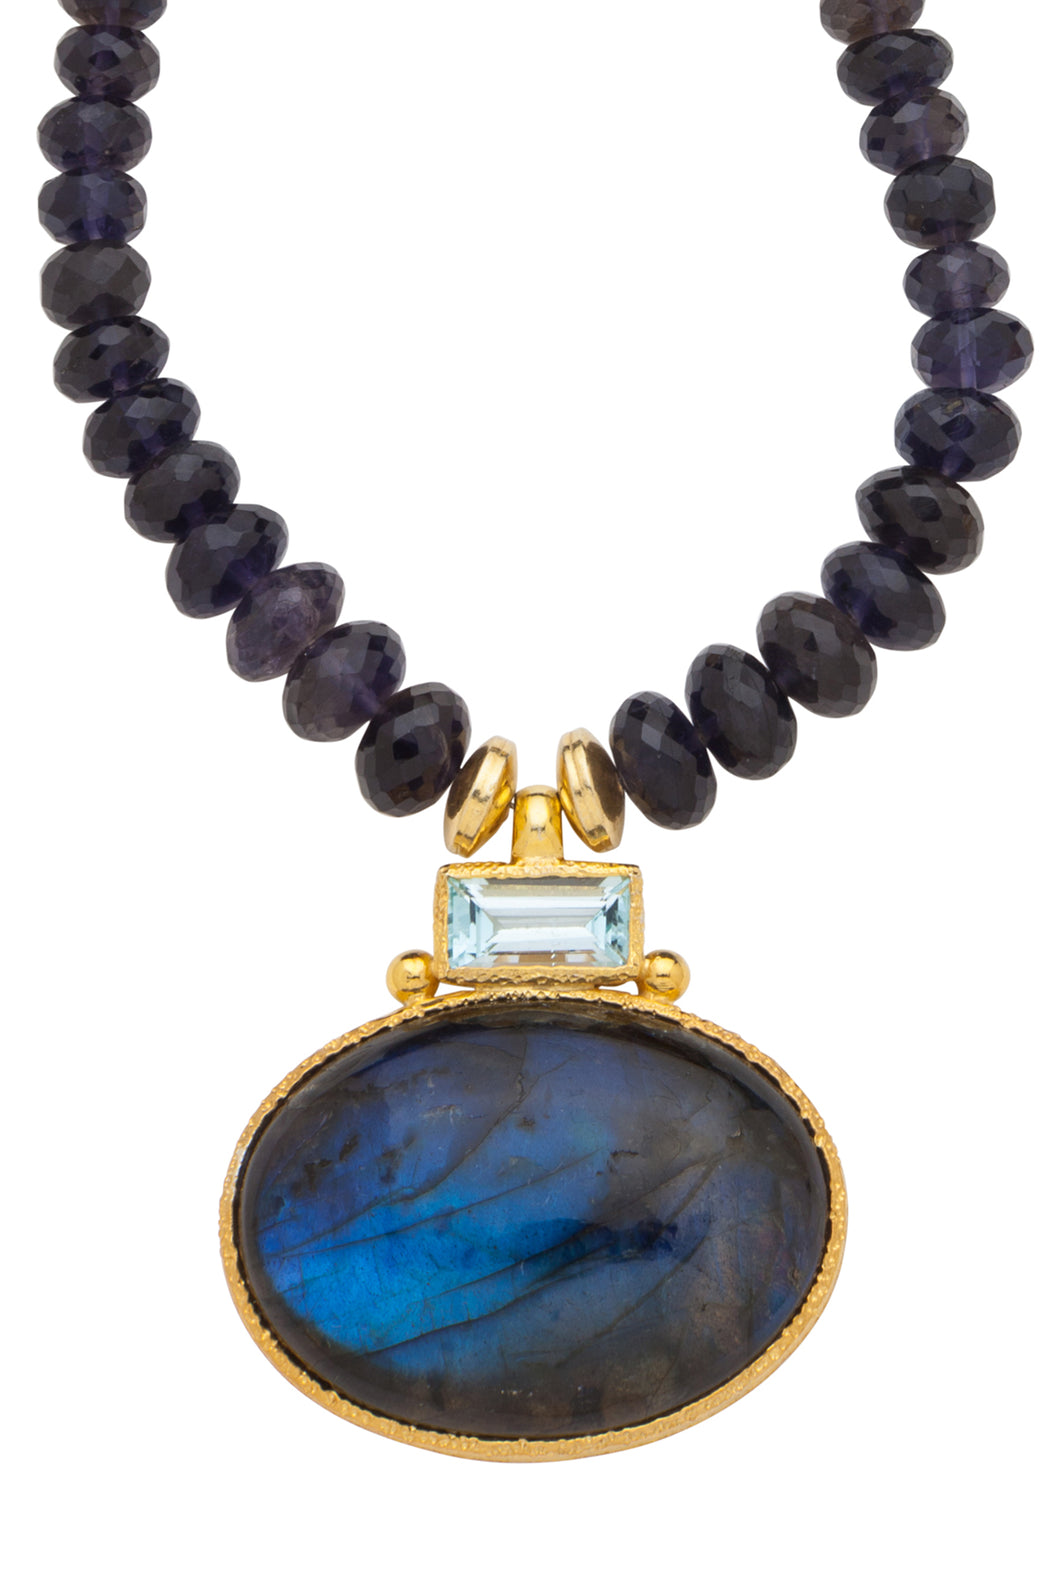 ONE OF A KIND Iolite Necklace with Blue Topaz and Labradorite Pendant set in 24kt gold vermeil  NF281-IBTL